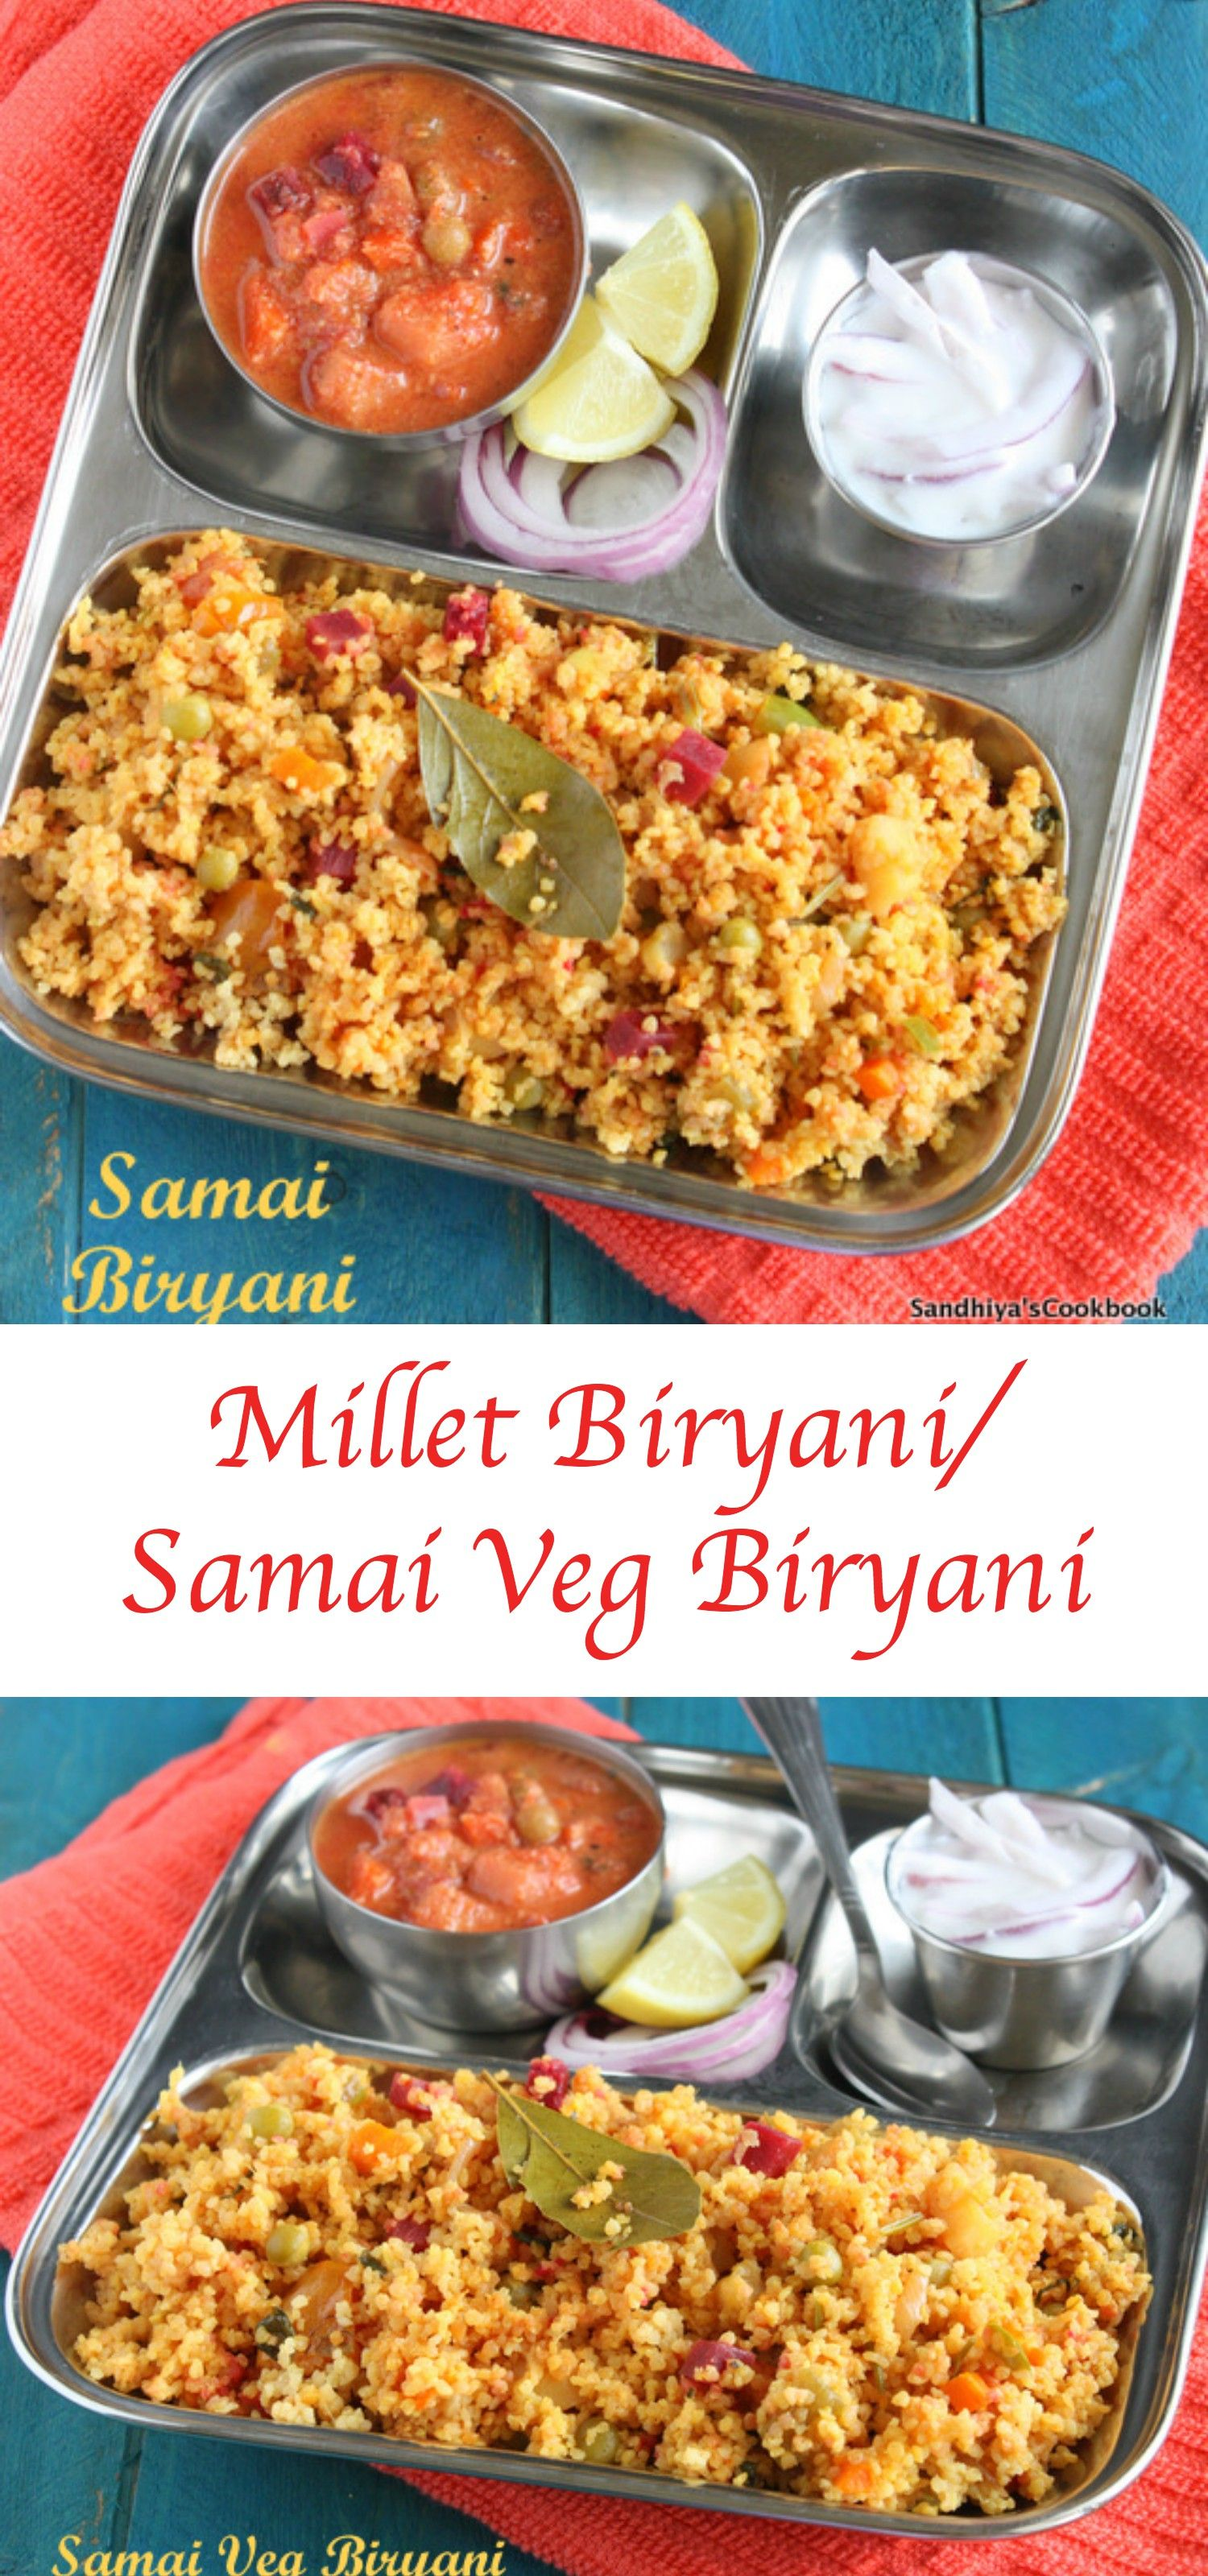 Samai Vegetable Biryani Millet Biryani Millet Recipe Millet Recipes Indian Rice Recipes Biryani